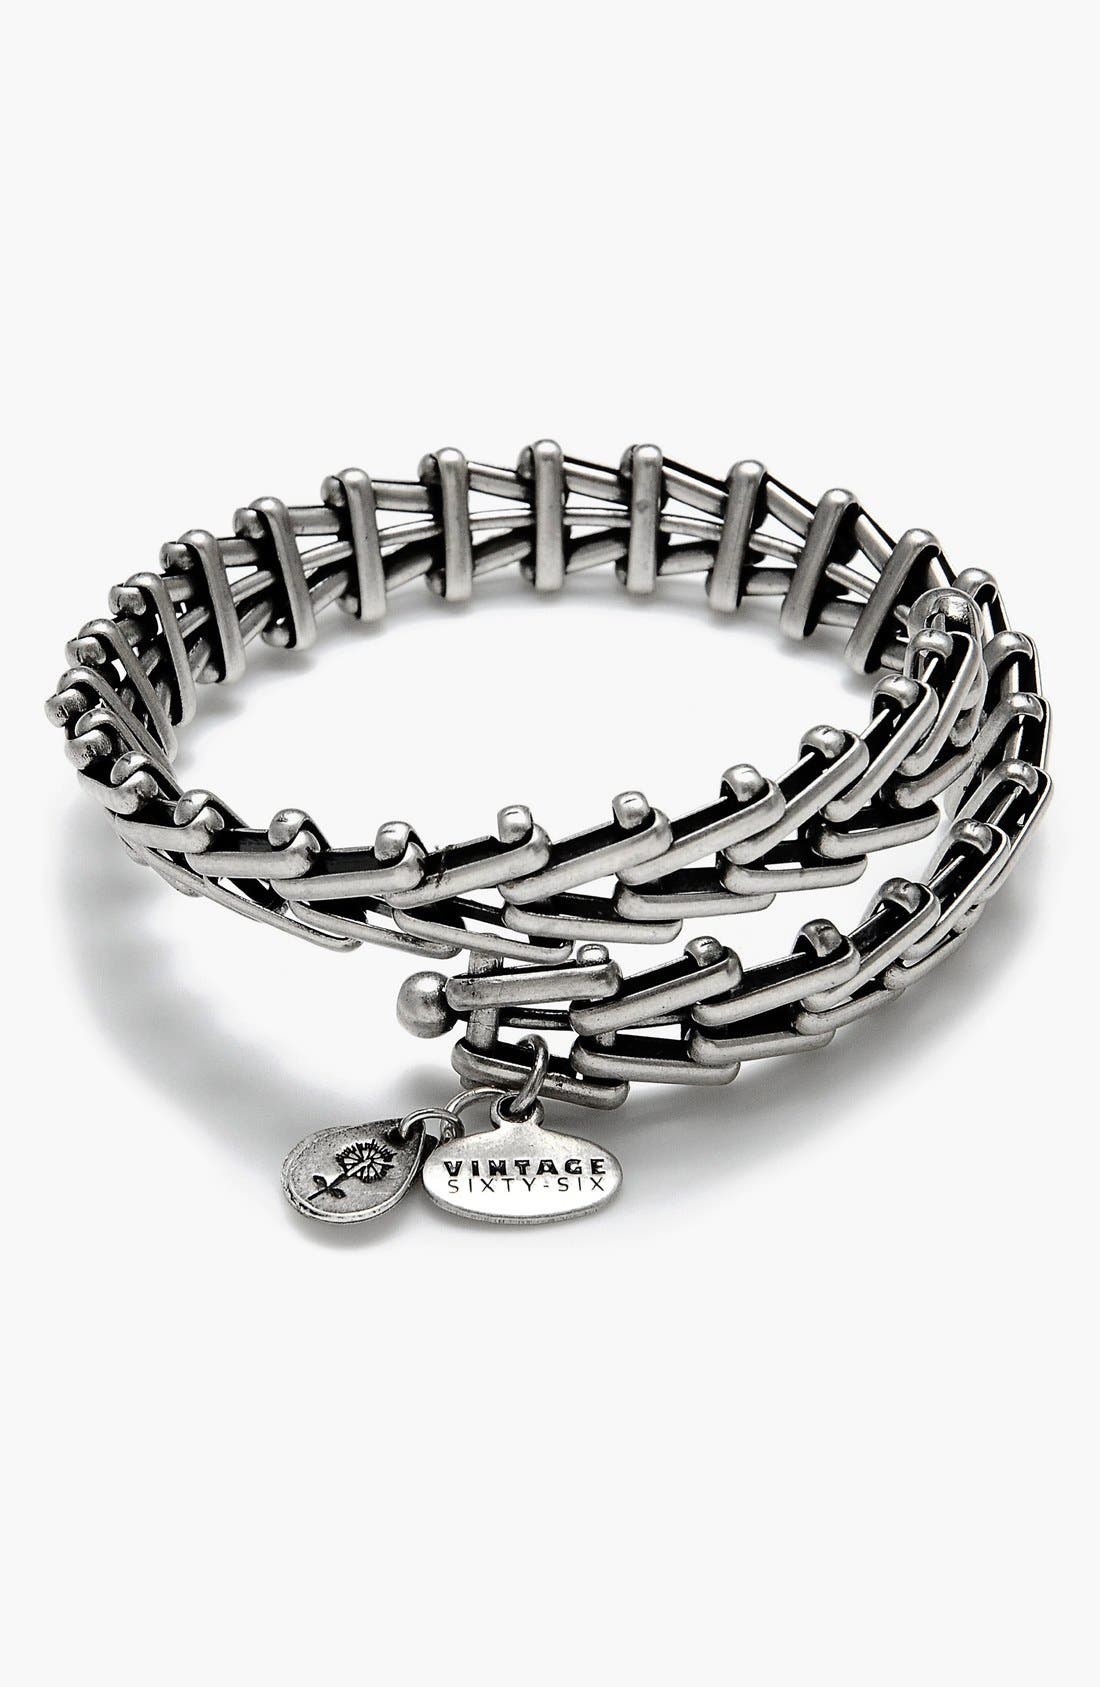 Alex and Ani 'Gypsy 66' Wrap Bracelet,                         Main,                         color, Russian Silver